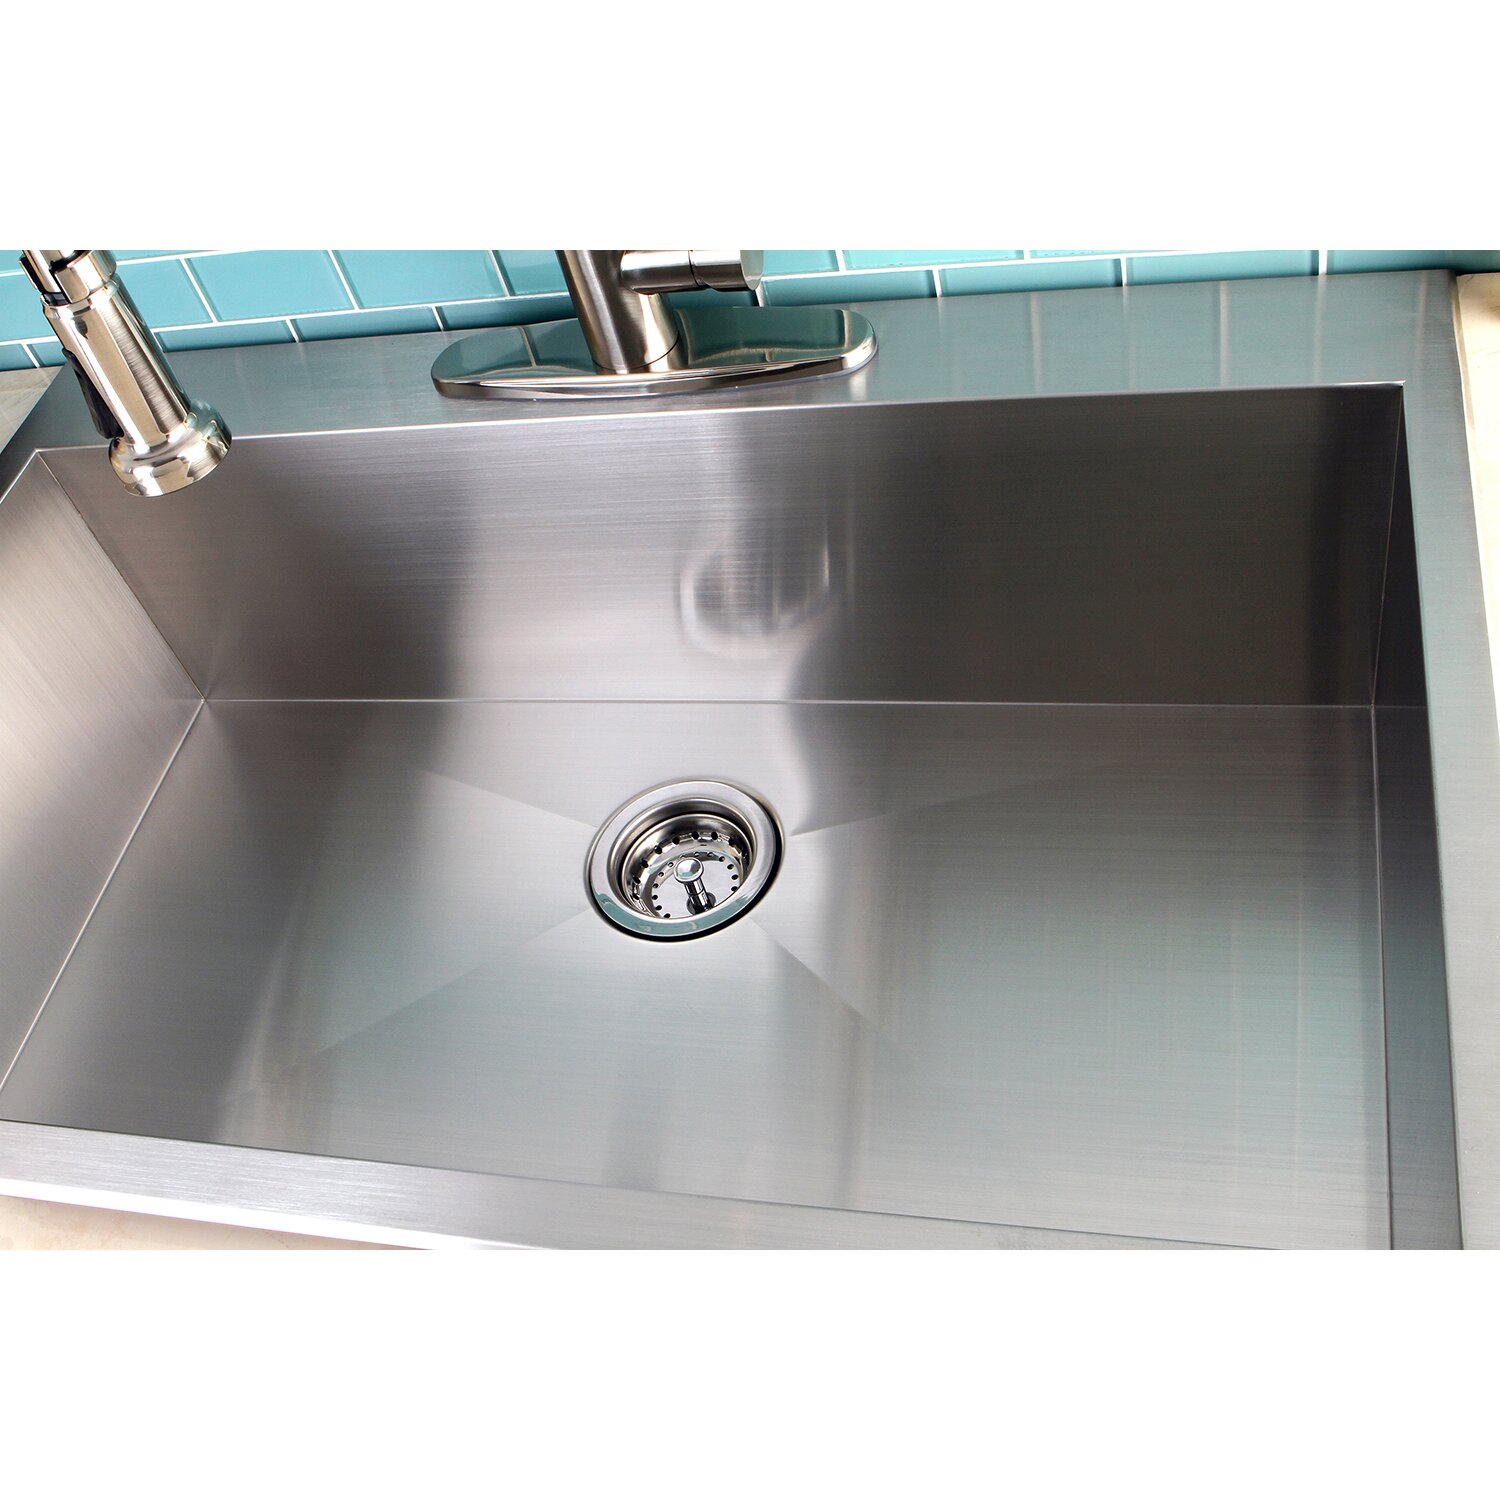 "Uptowne 33"" x 22"" Self Rimming Single Bowl Kitchen Sink"